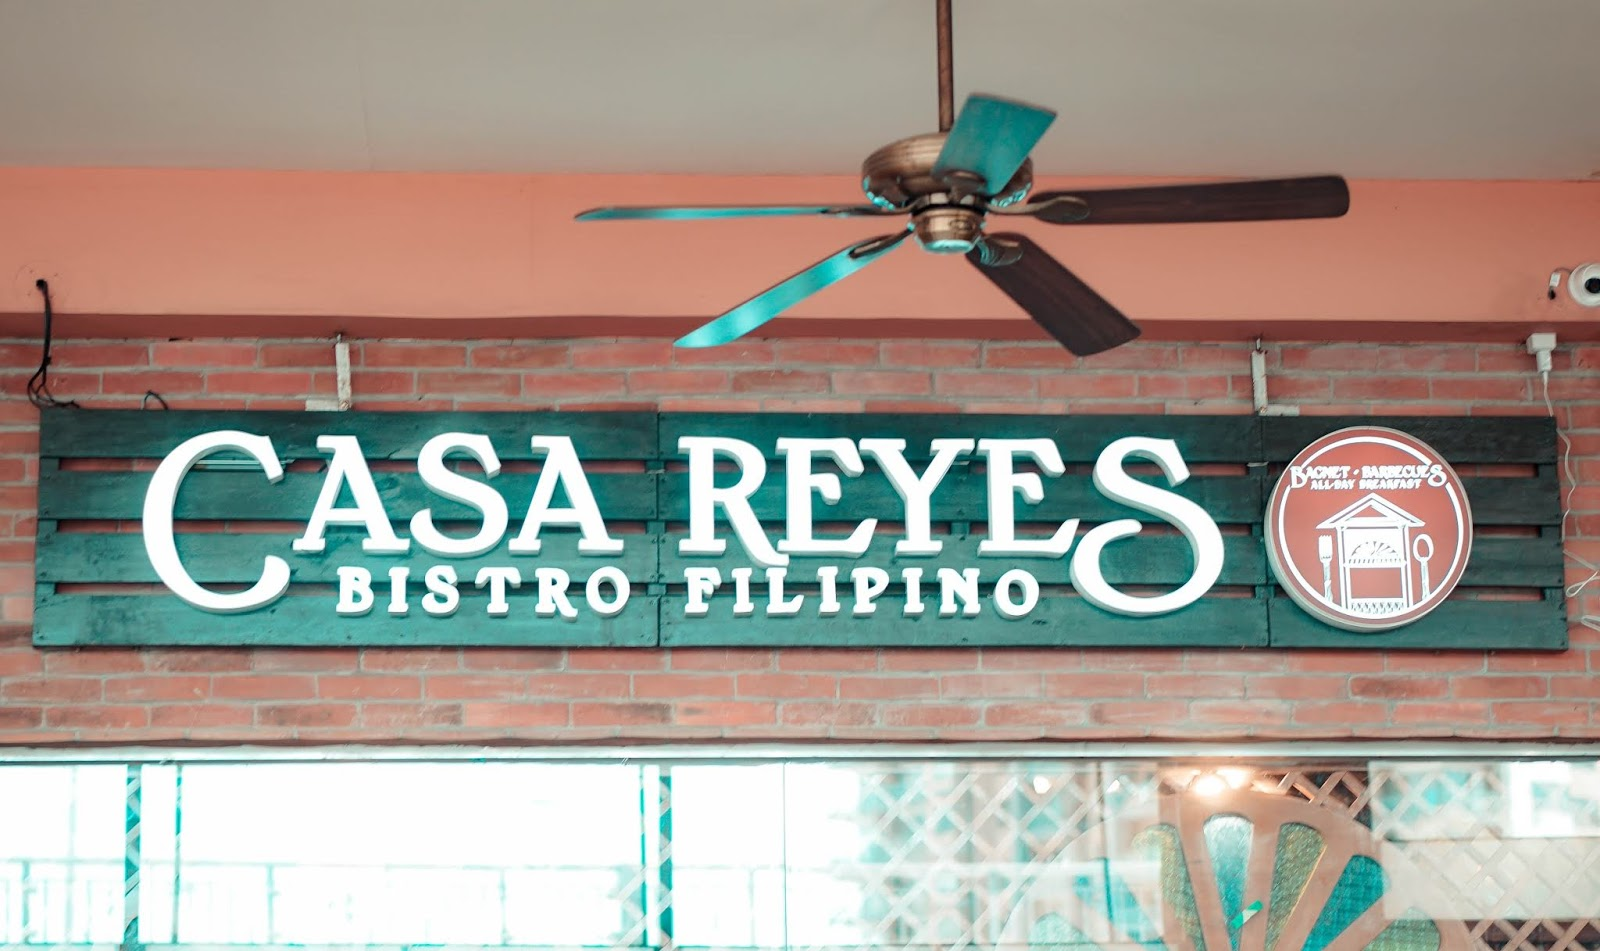 Where to eat in Greenhills - Casa Reyes Bistro Filipino, best wagyu beef